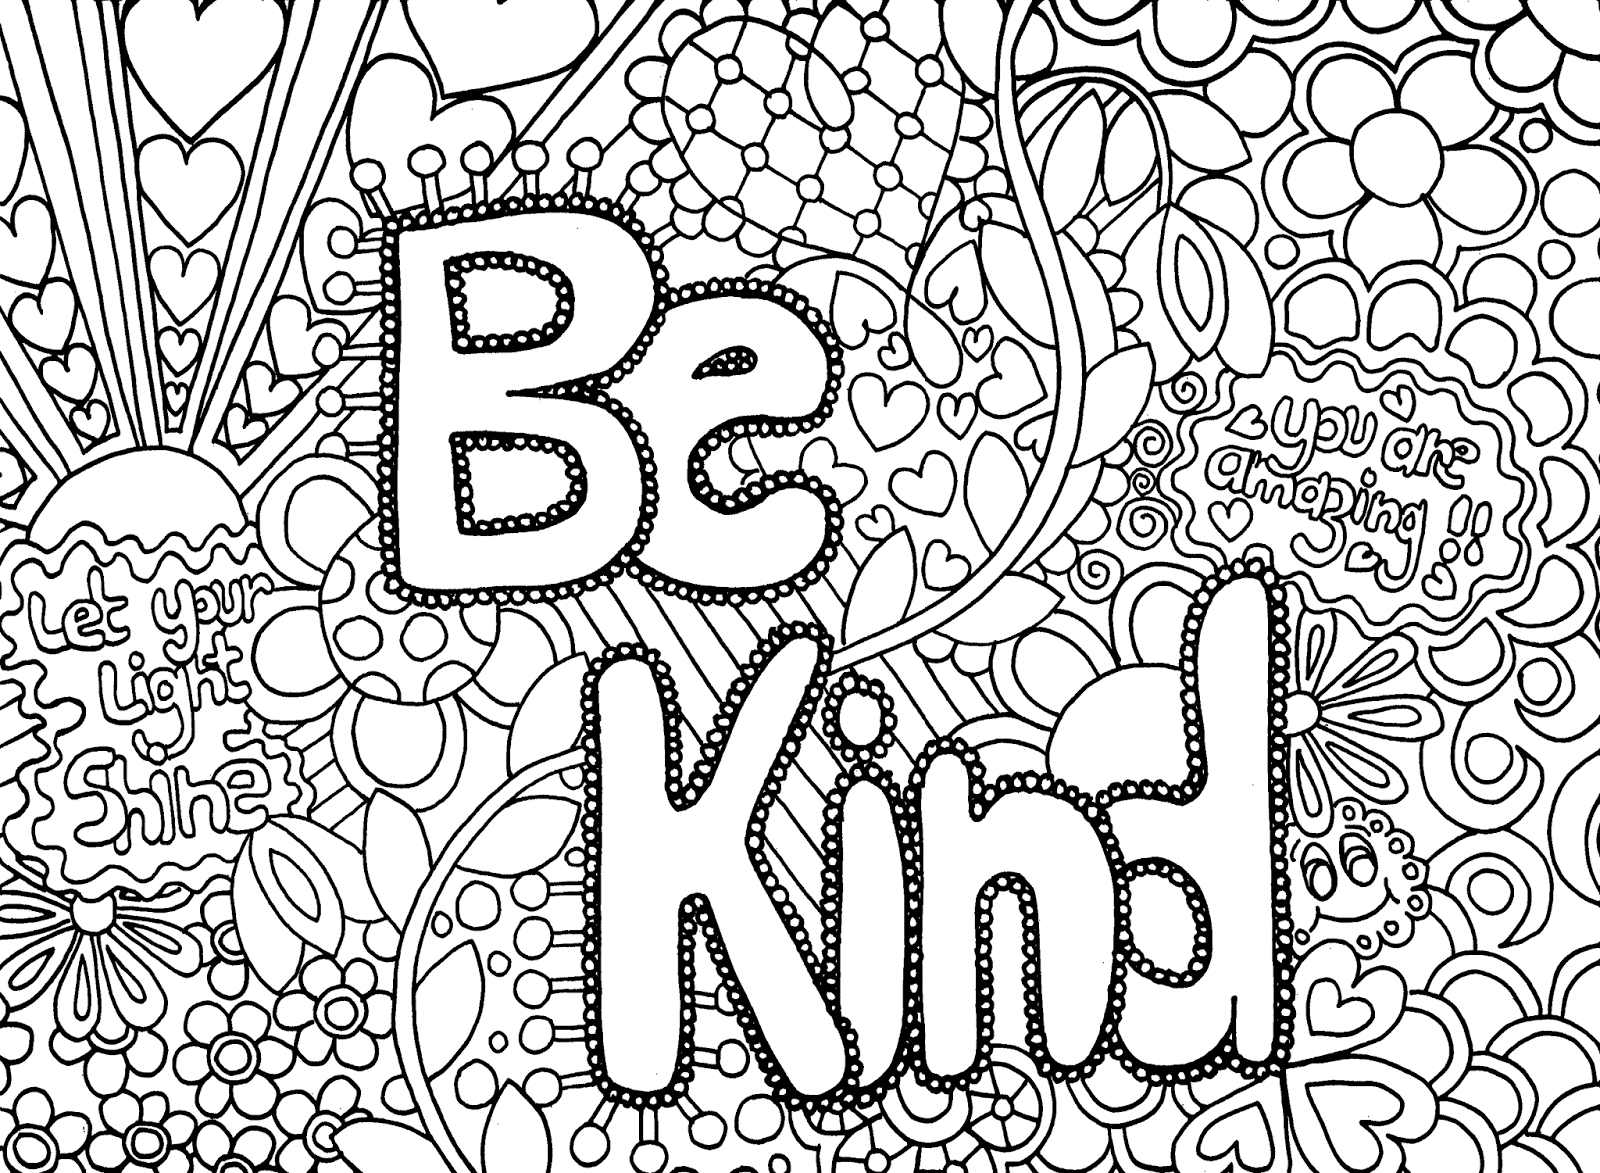 New Abstract Coloring Pages for Teenagers Difficult Gallery Collection Of Stress Relief Coloring Pages Animals Funny Coloring Pages Printable